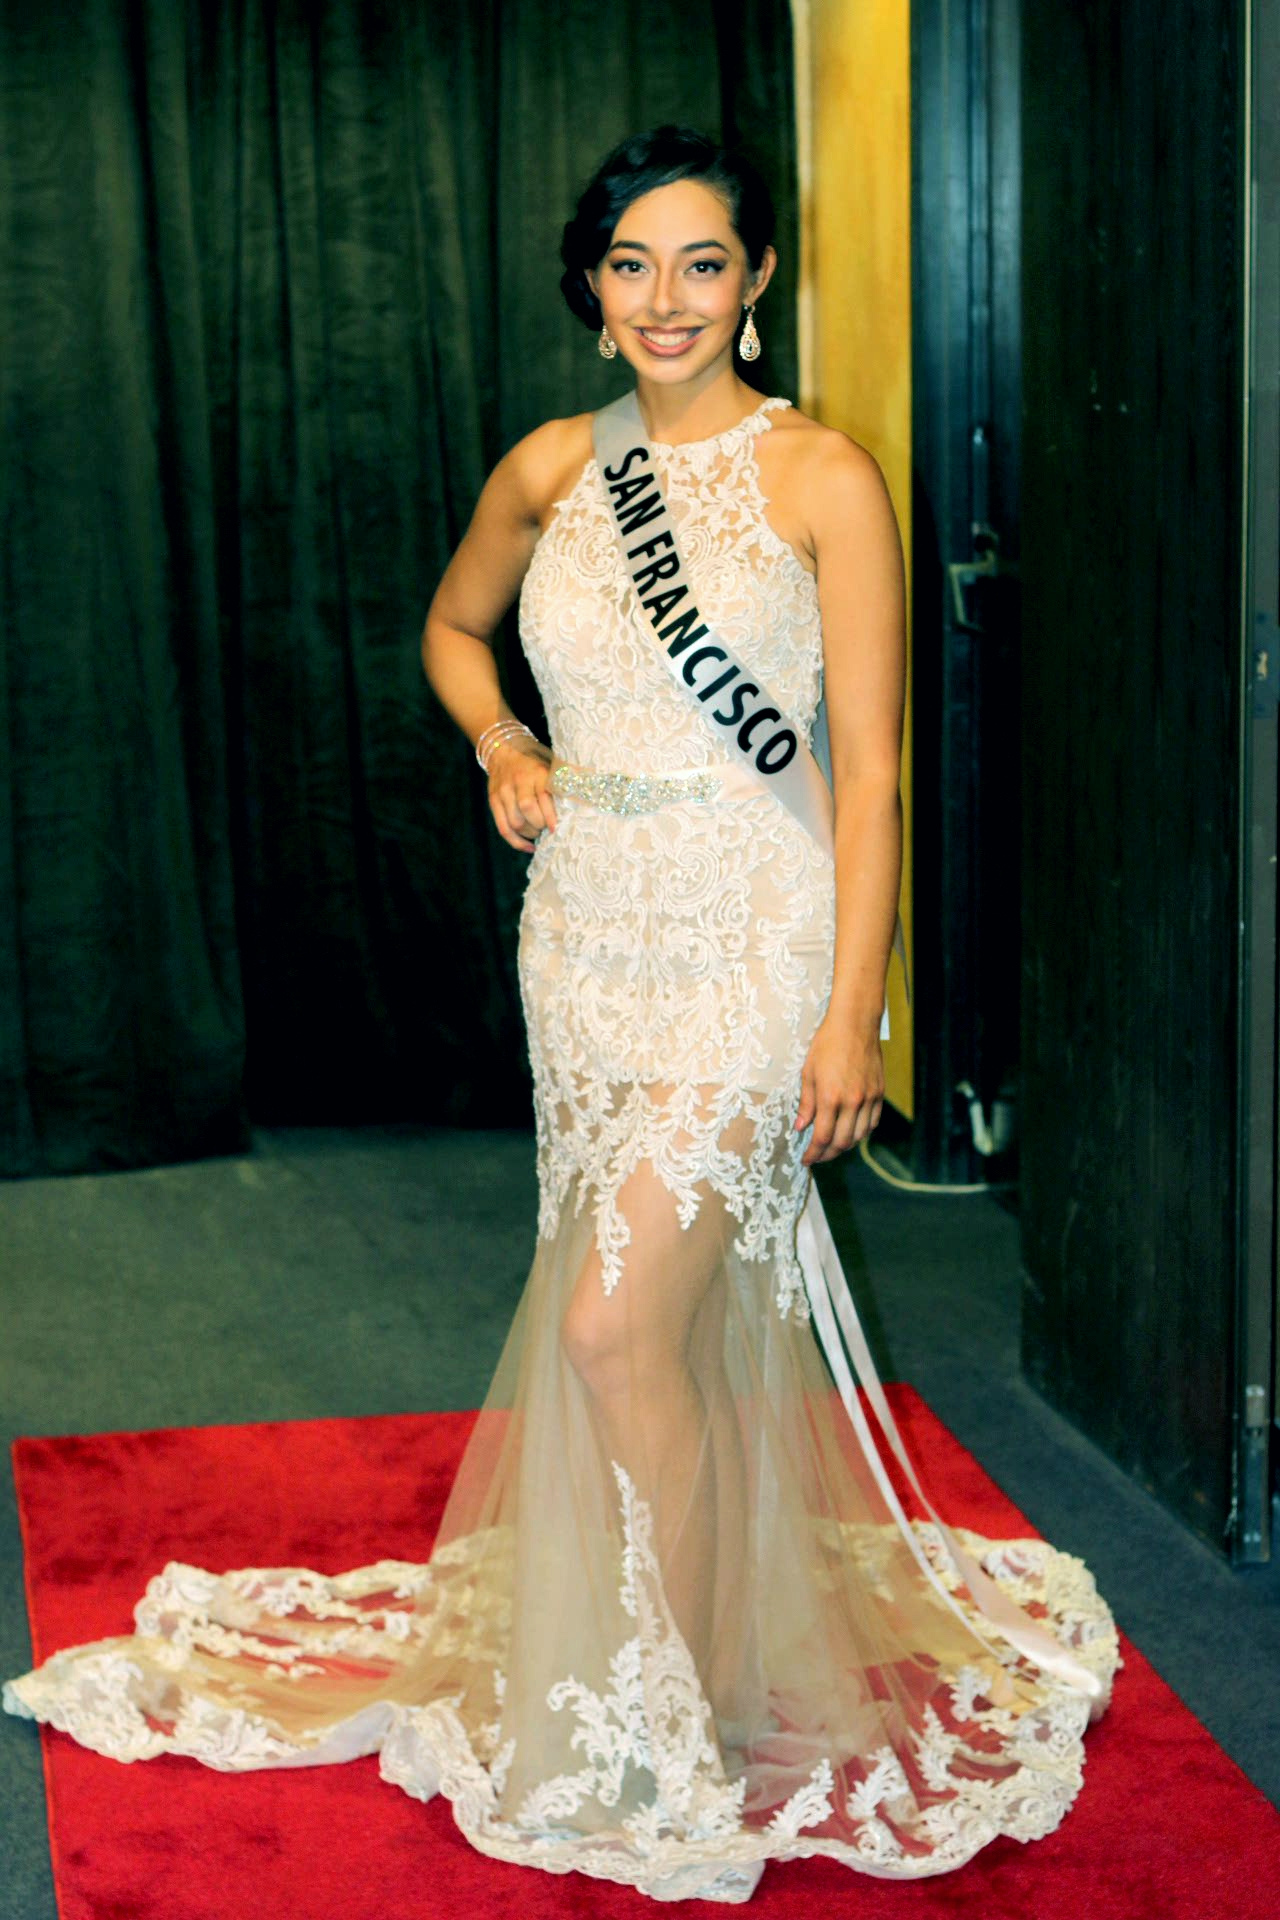 Miss Greater Bay Area USA